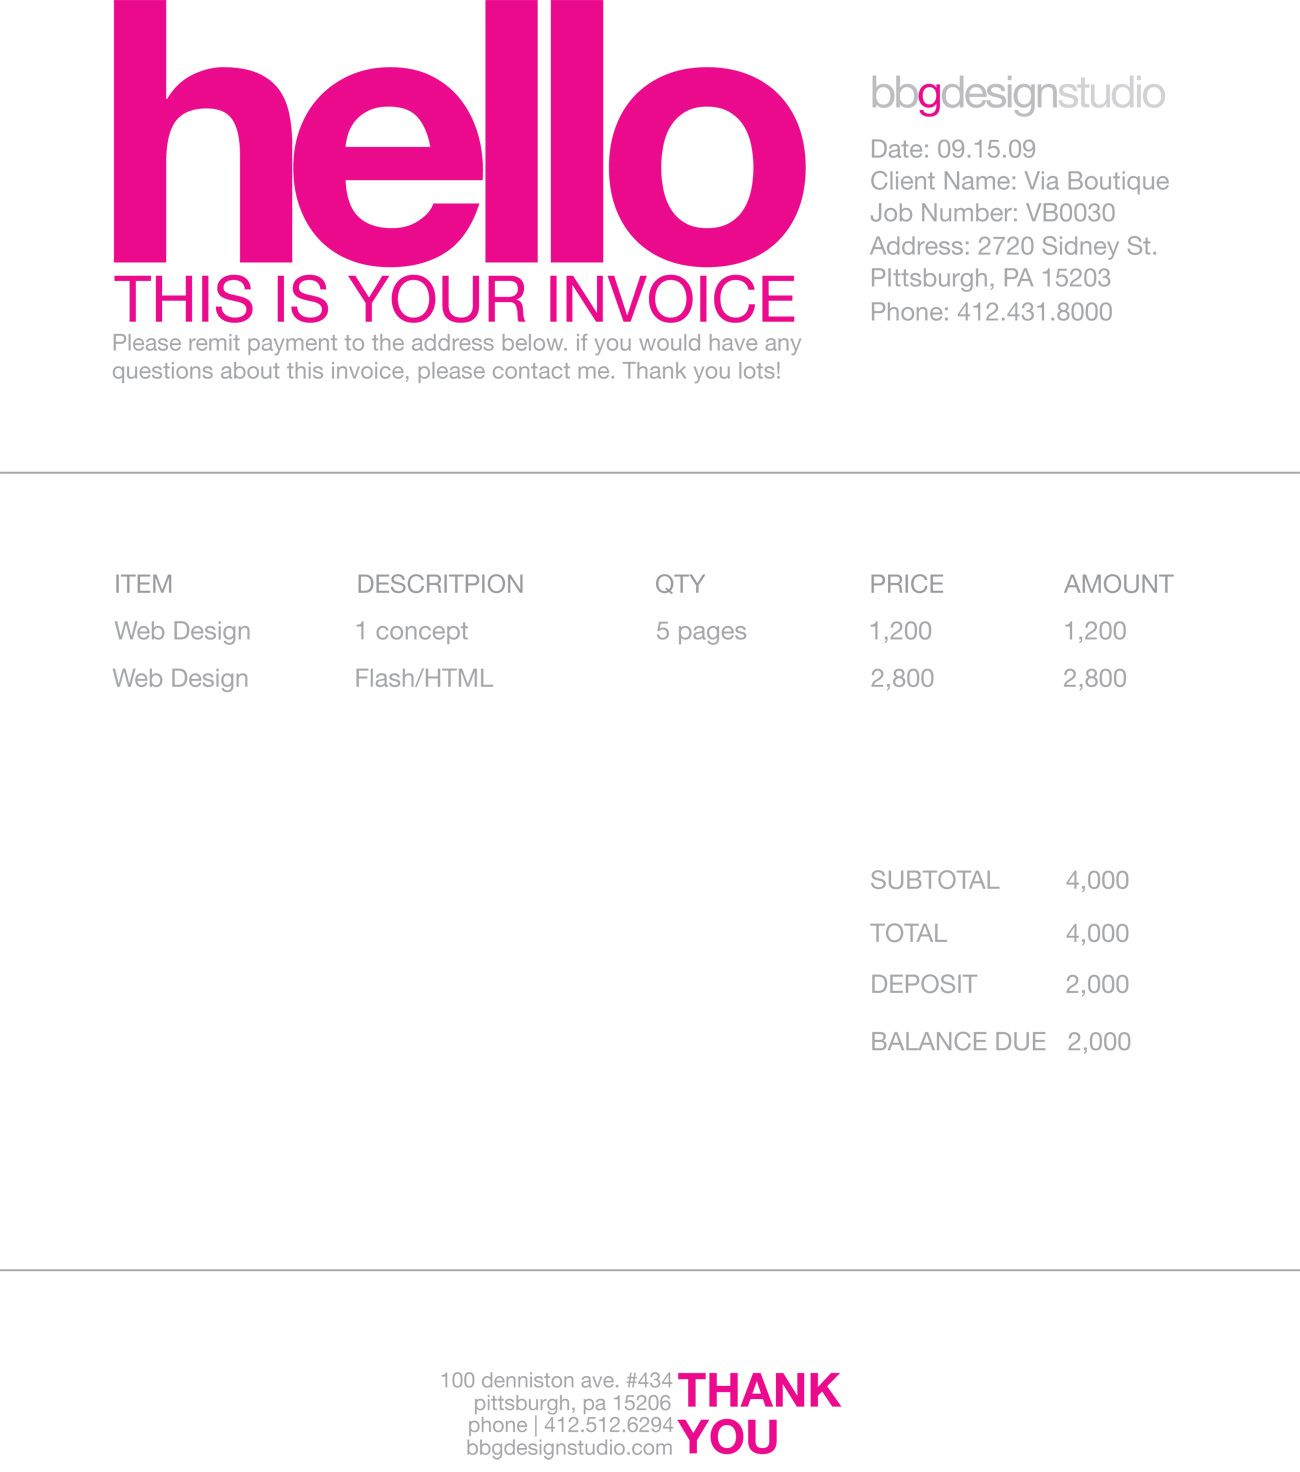 Usdgus  Splendid  Images About Invoice Design On Pinterest With Glamorous Find Invoice Price Of New Car Besides Microsoft Office Templates Invoice Furthermore Quicken Invoicing With Attractive Quote Invoice Template Also Example Of A Invoice In Addition Web Development Invoice And Make Invoice Template As Well As Paypal Invoice Payment Additionally What Does Dealer Invoice Price Mean From Pinterestcom With Usdgus  Glamorous  Images About Invoice Design On Pinterest With Attractive Find Invoice Price Of New Car Besides Microsoft Office Templates Invoice Furthermore Quicken Invoicing And Splendid Quote Invoice Template Also Example Of A Invoice In Addition Web Development Invoice From Pinterestcom